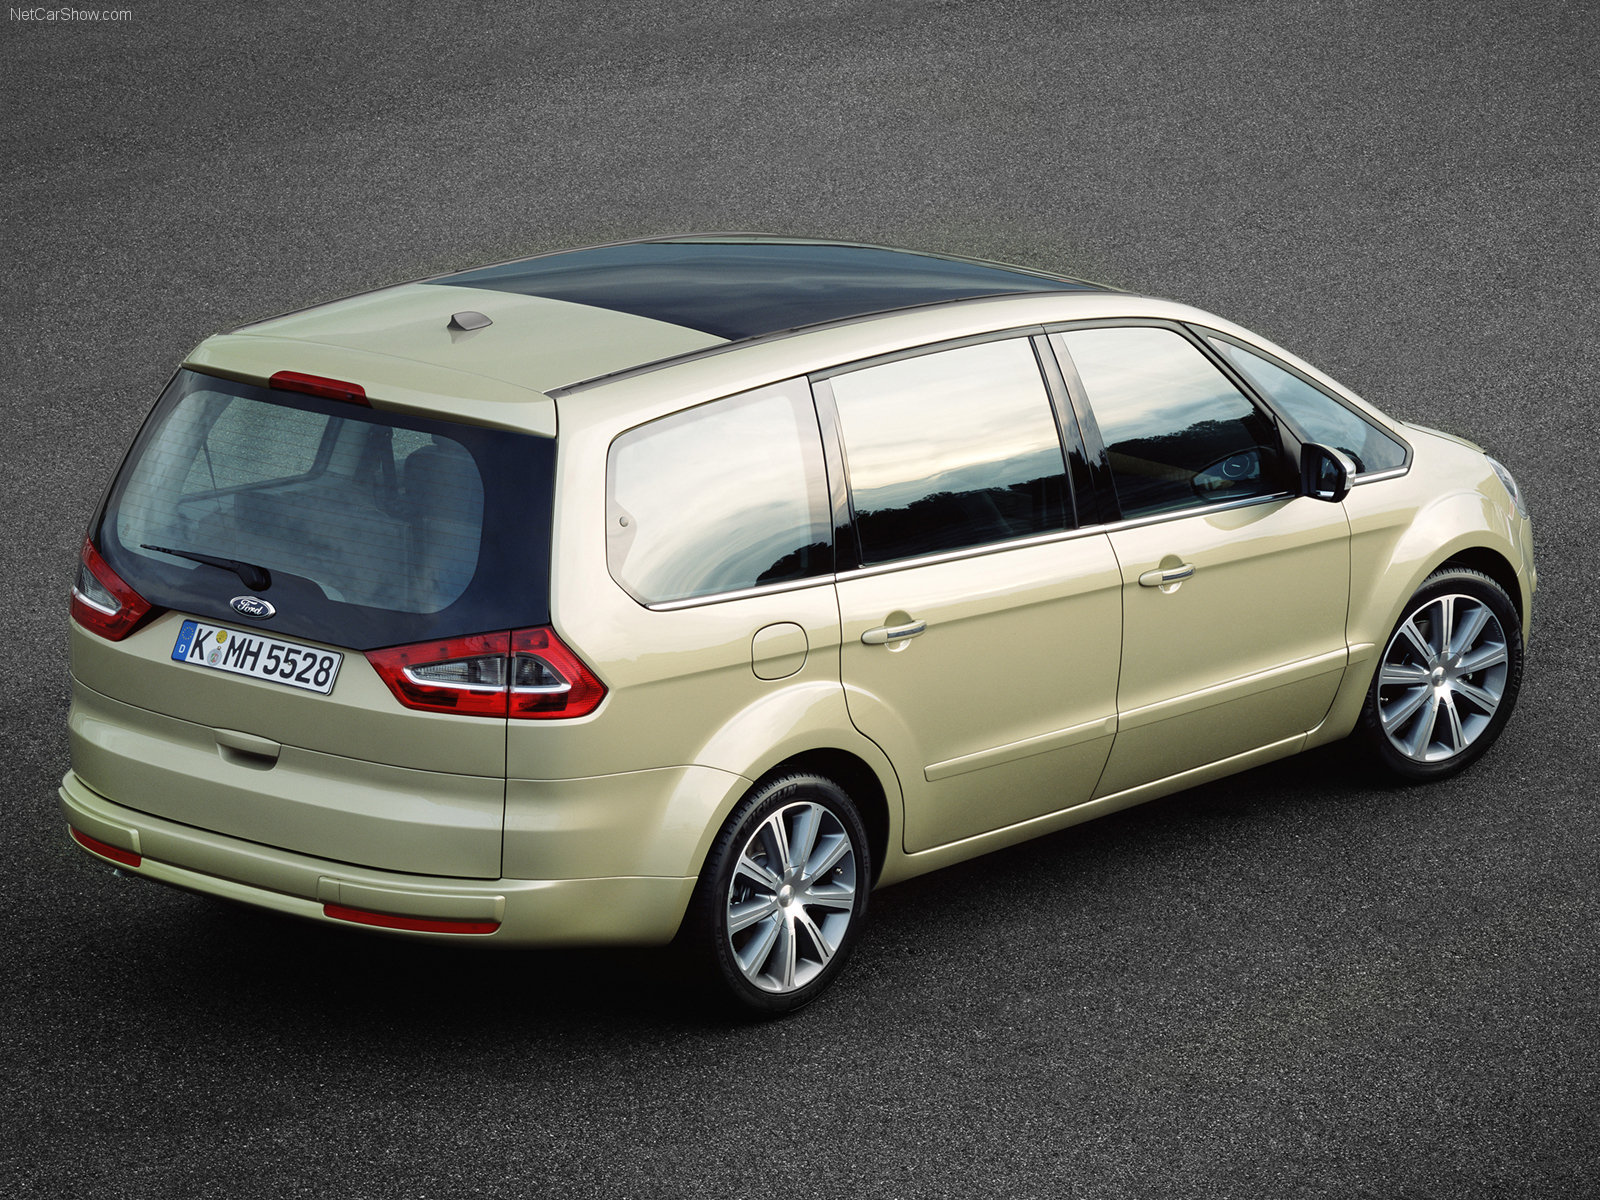 Hq Car Wallpapers Ford Galaxy Picture 32184 Ford Photo Gallery